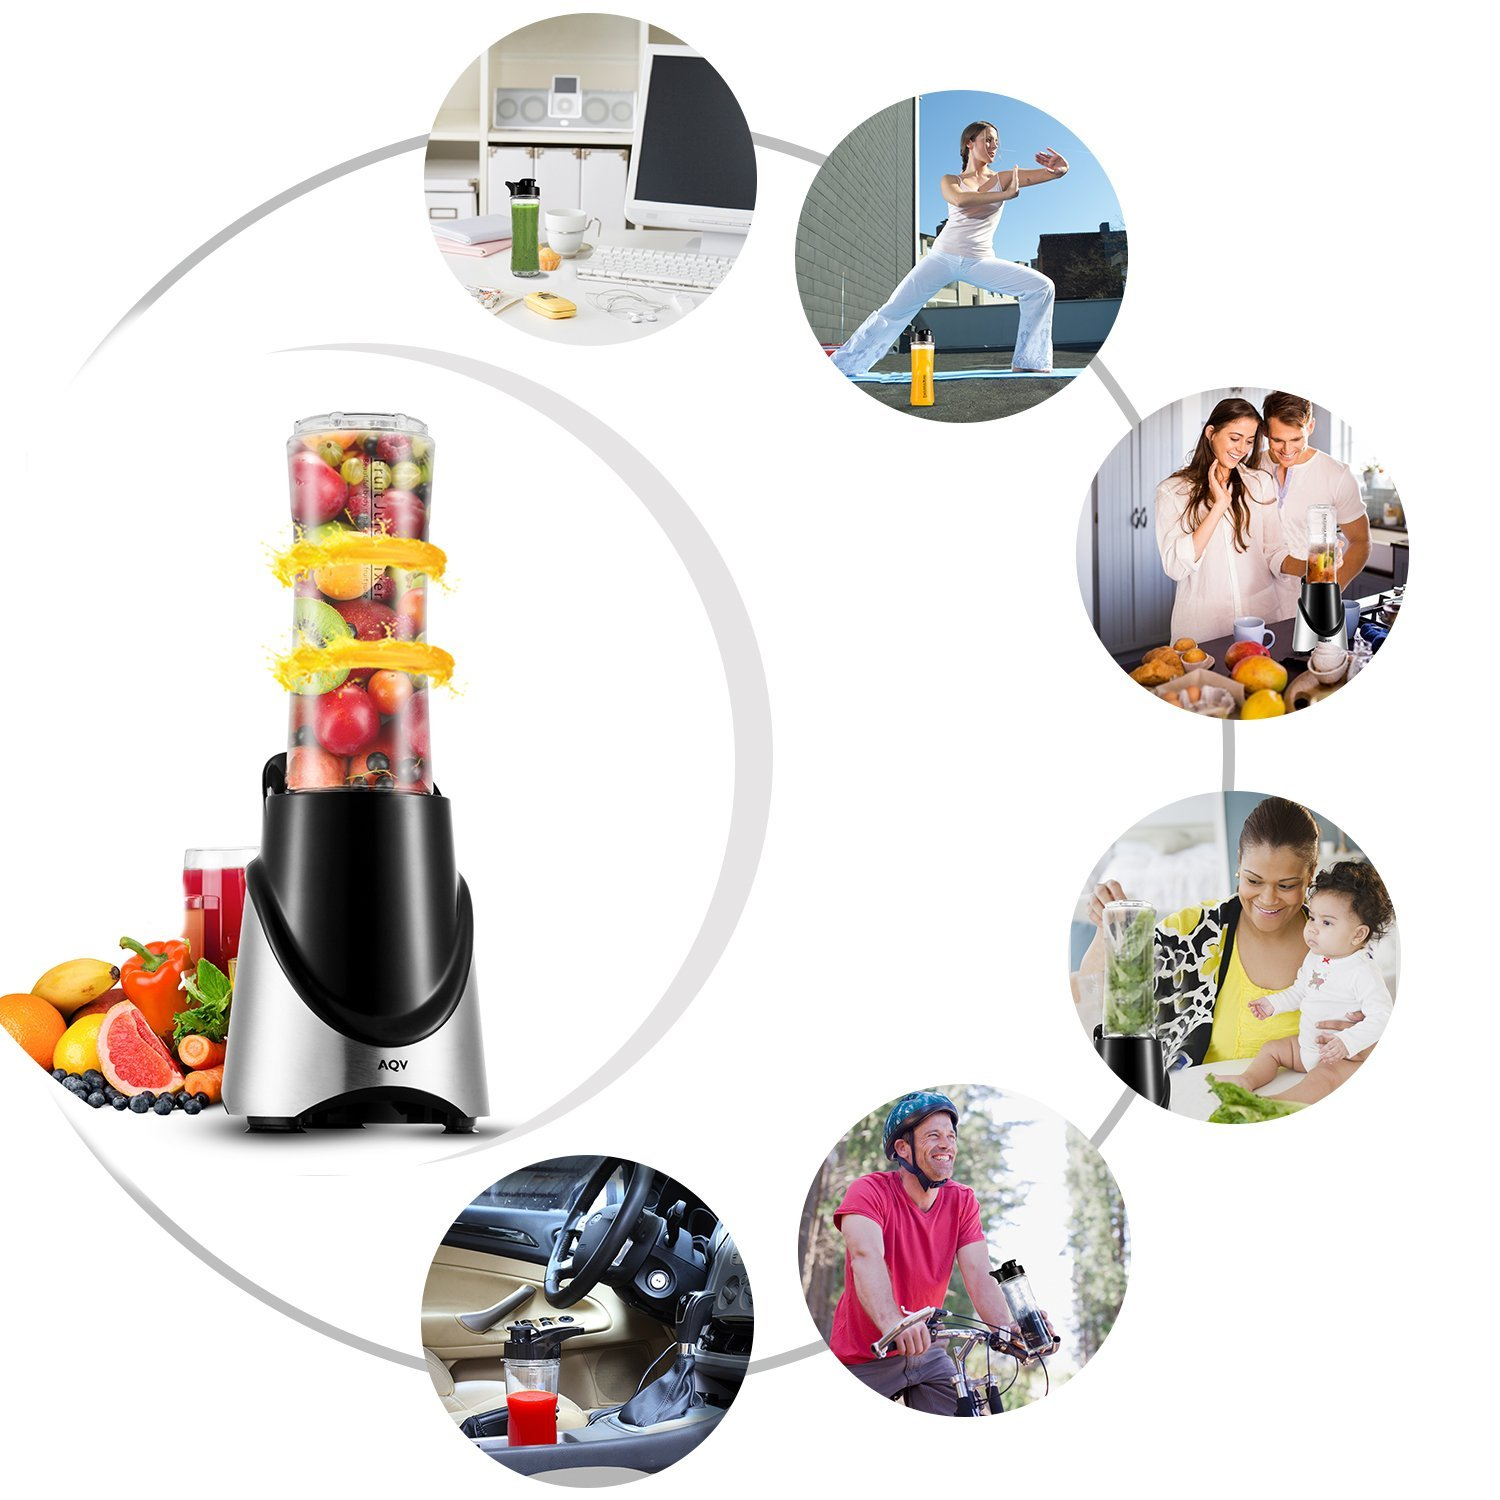 AQV mini Blenders Portable Blender With Travel Cup 300W Smoothie Maker With Stainless Steel 4 Action Blades Certisfied with ROhs/CE